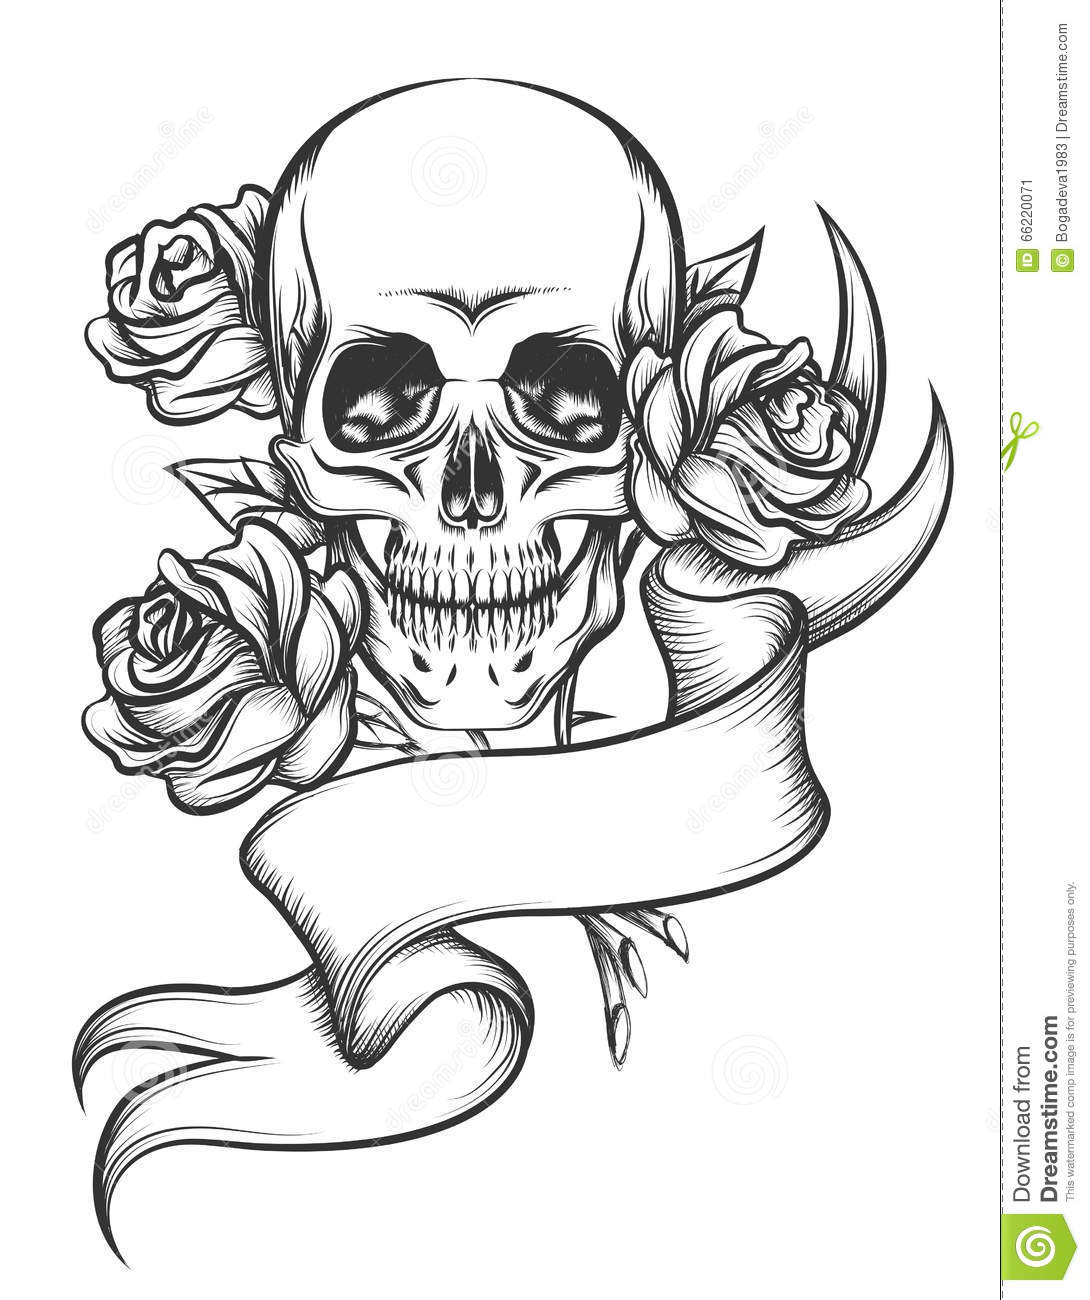 Skull And Roses With Ribbon Stock Vector Illustration Of Body